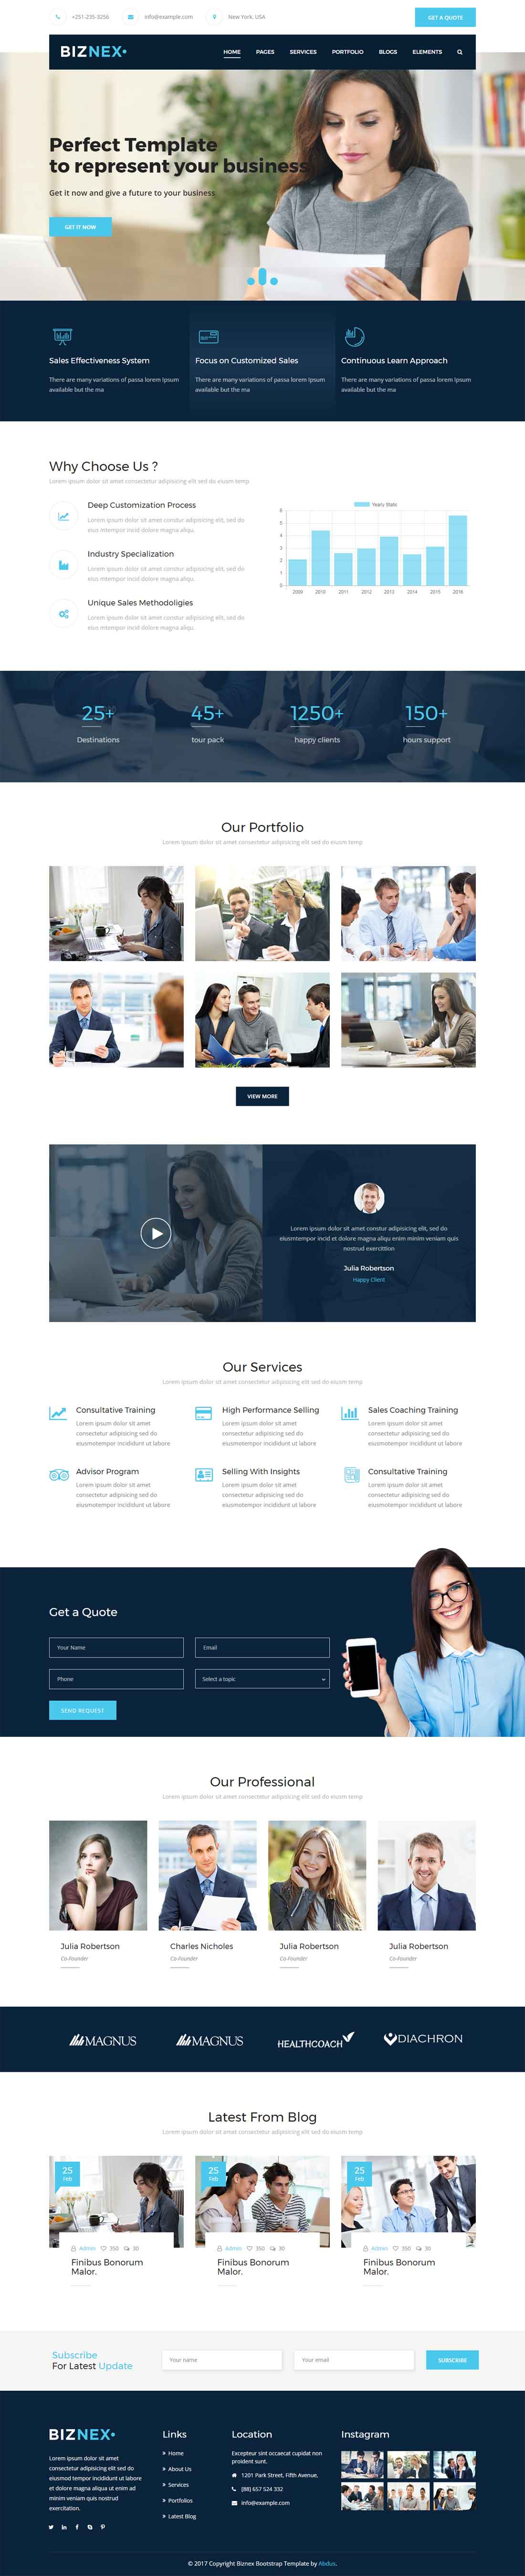 BIZNEX – Responsive Multipurpose Business Theme